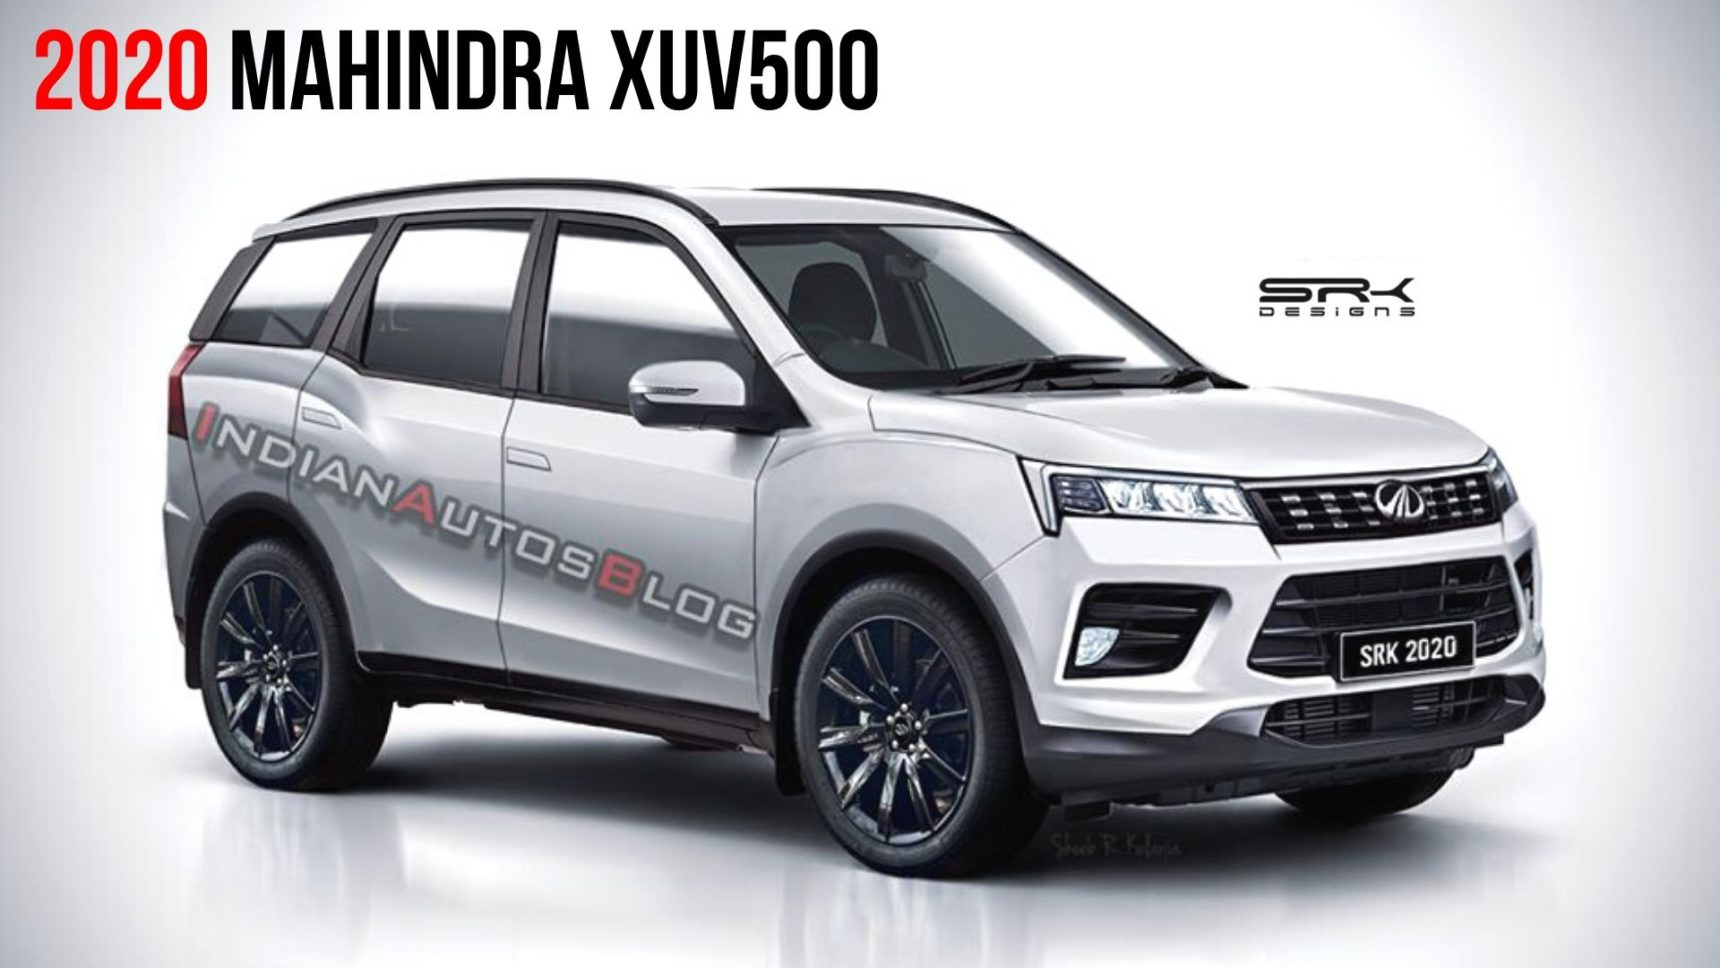 New-Gen Mahindra Scorpio, XUV500 And eXUV300 To Launch Next Year